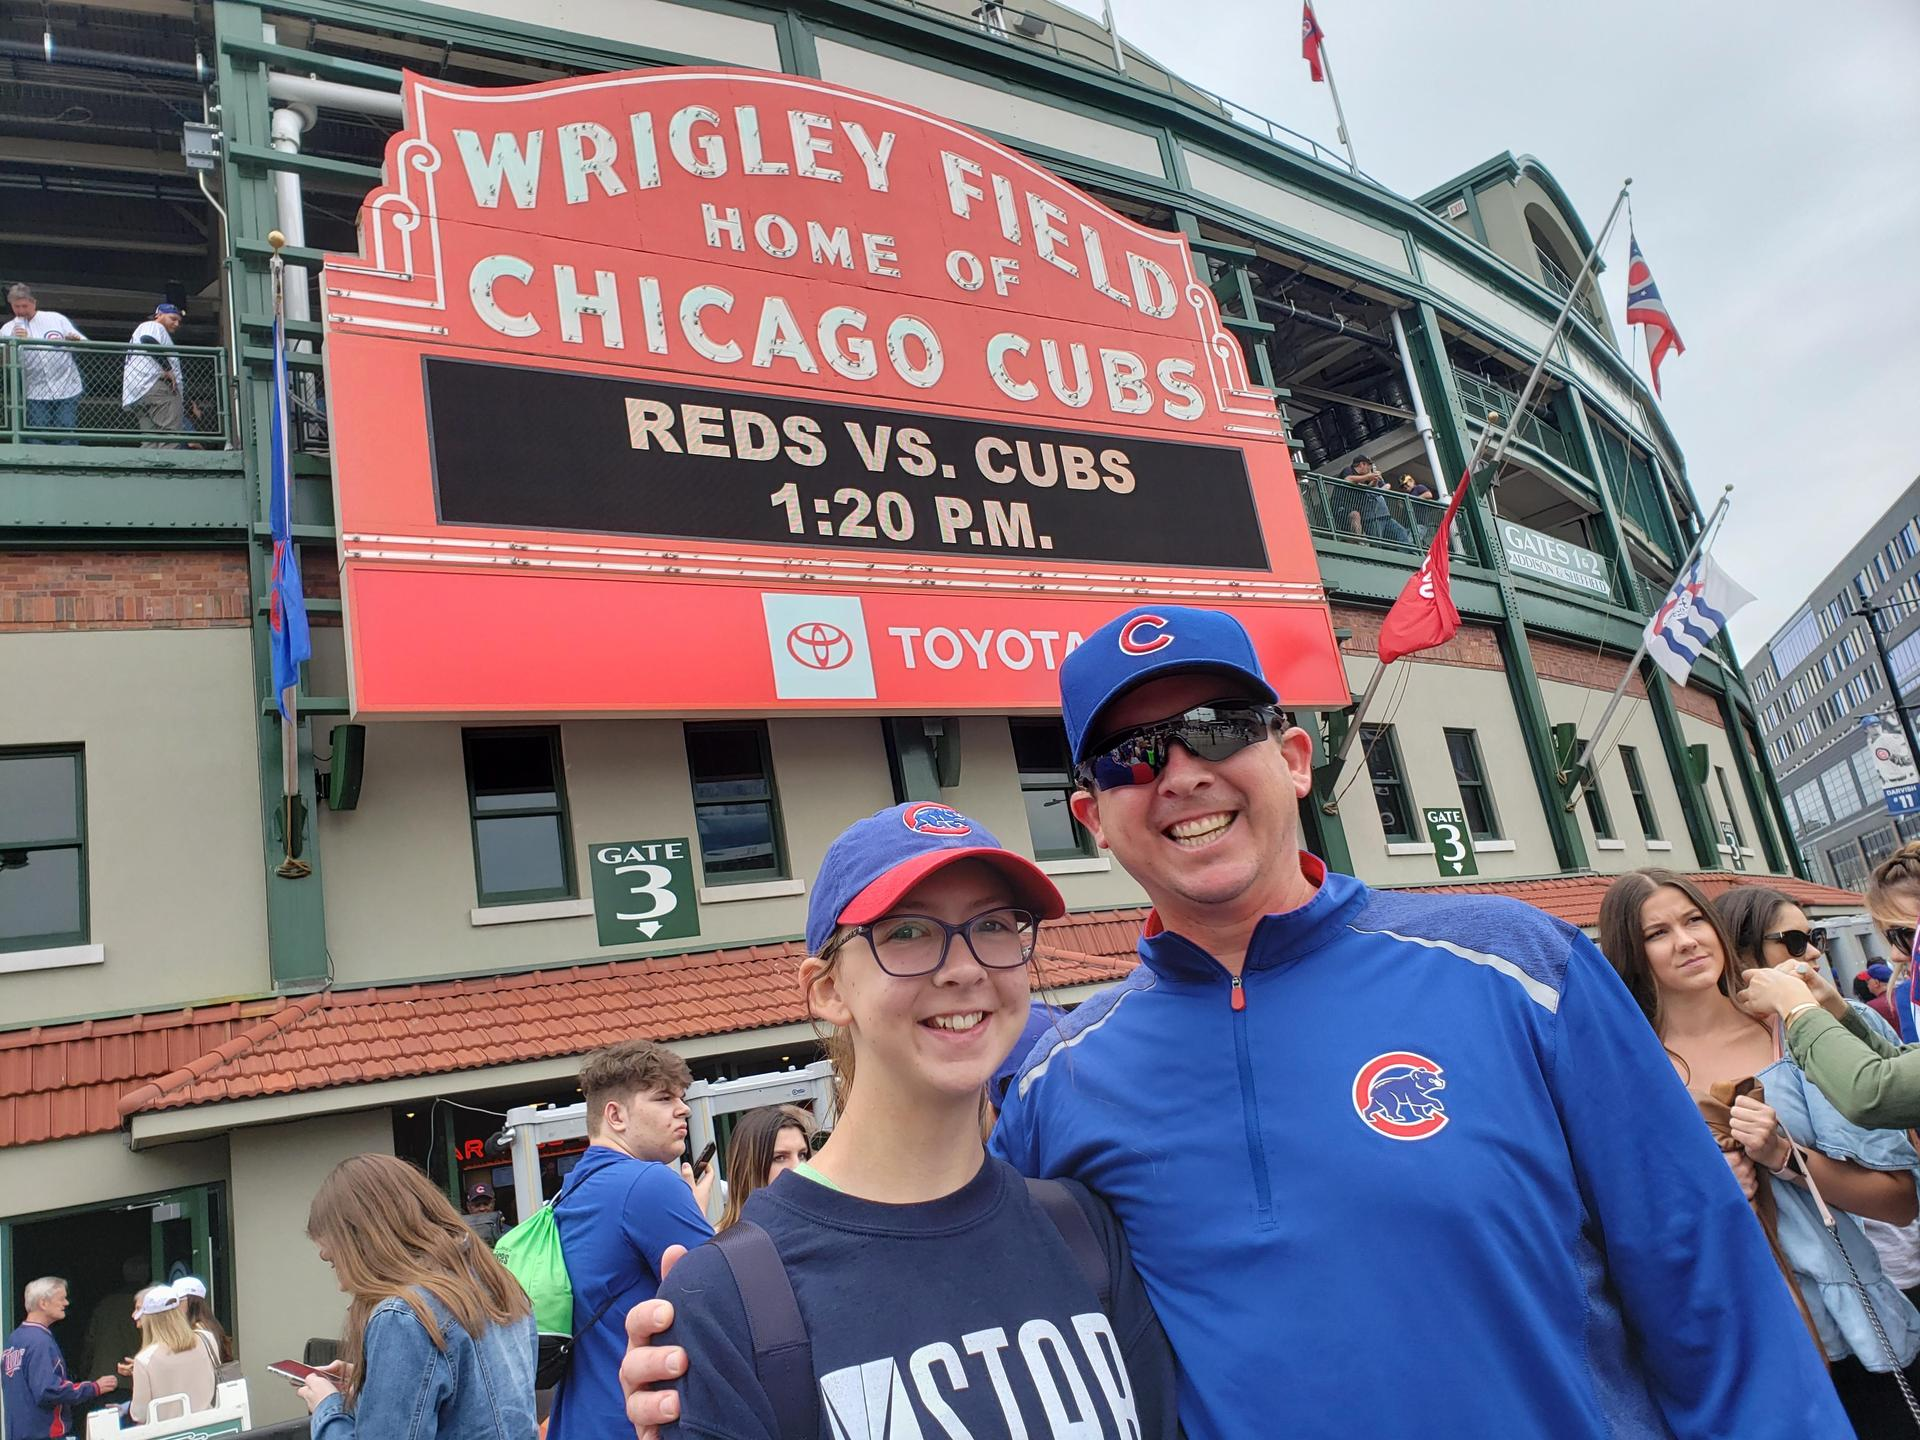 man and woman pose in front of Wrigley Field sign